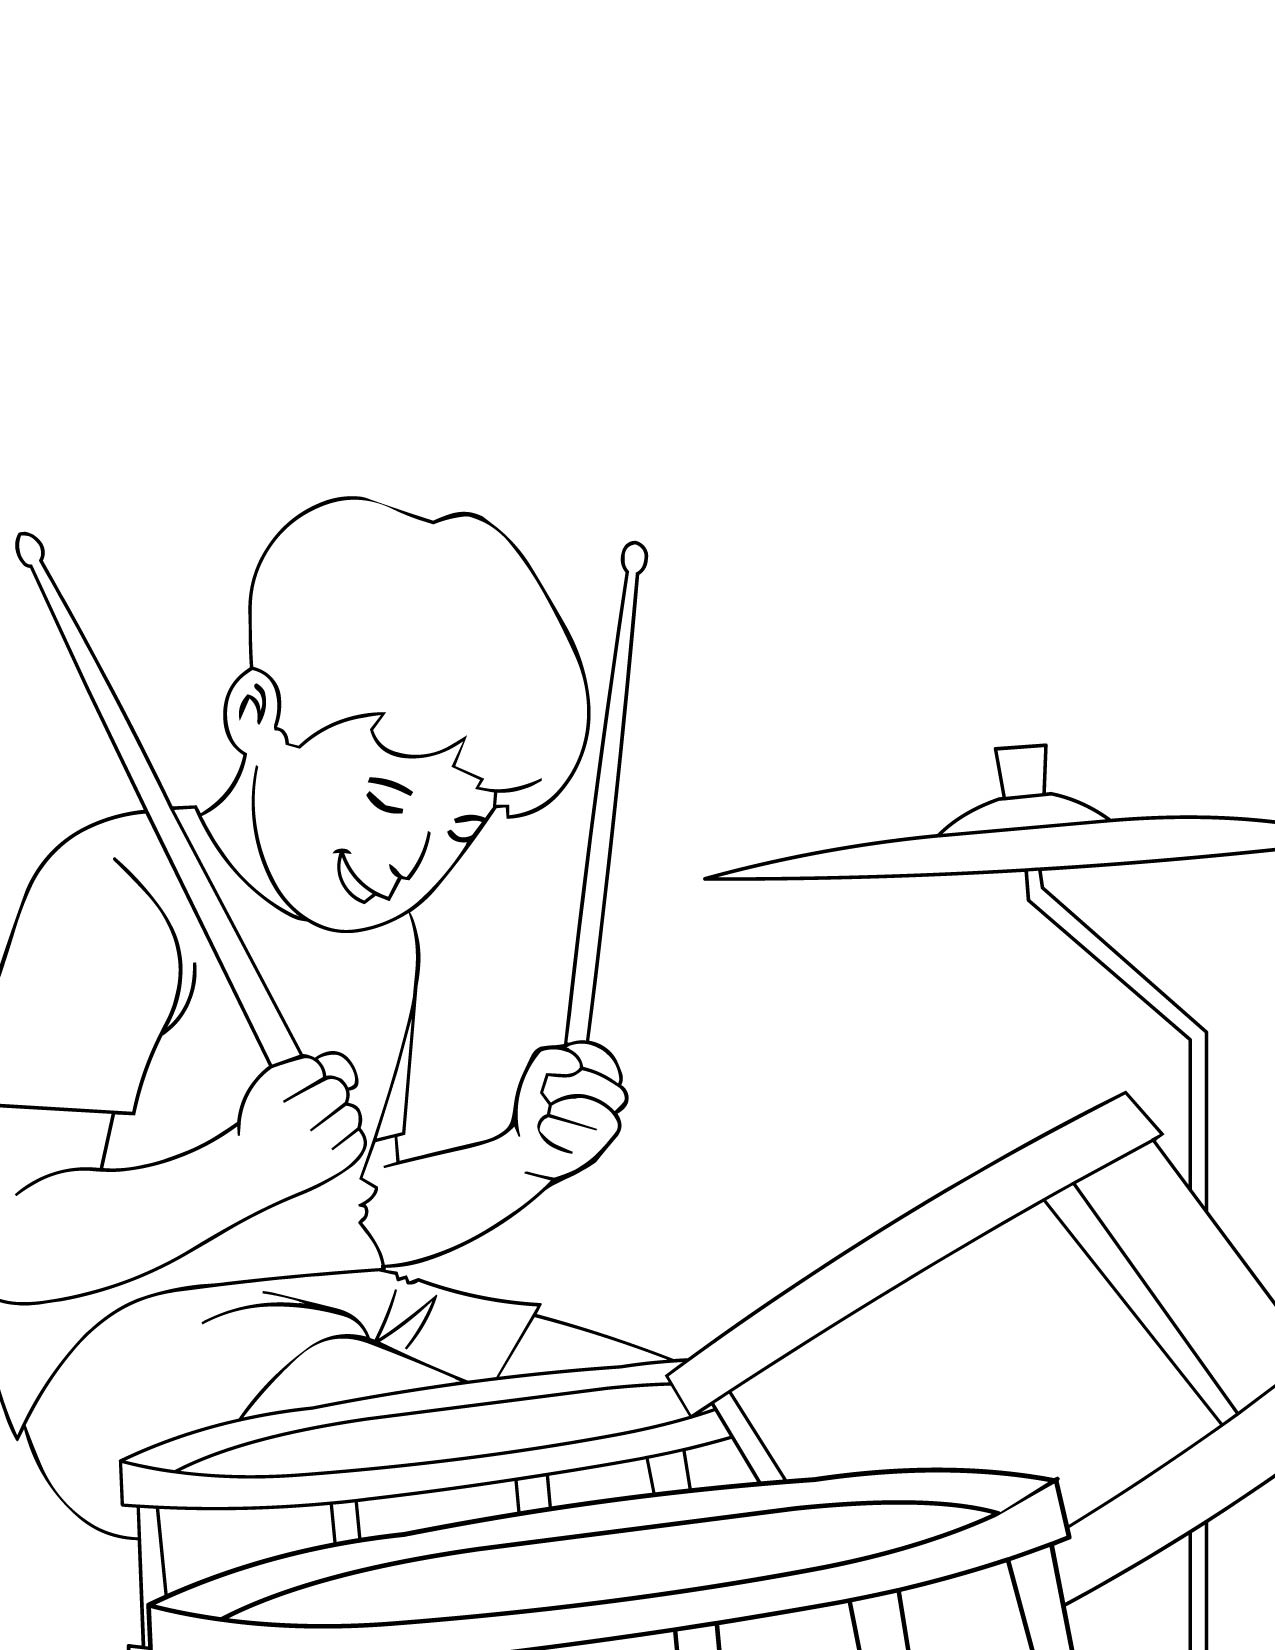 Musical Instruments Drawing At Getdrawings